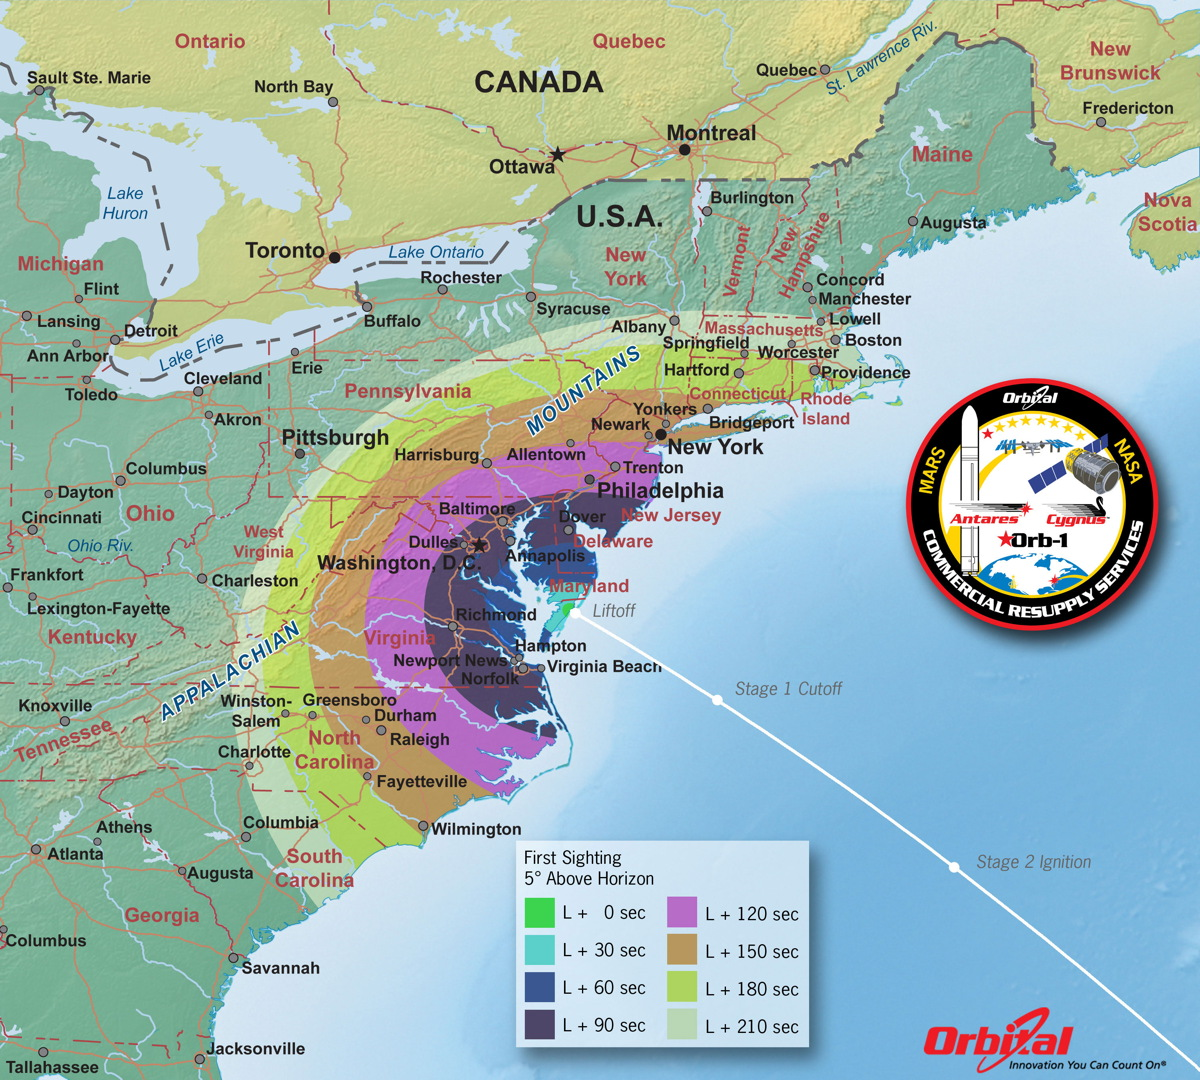 Time of First Sighting Map of Antares Launch, Dec. 18, 2013.